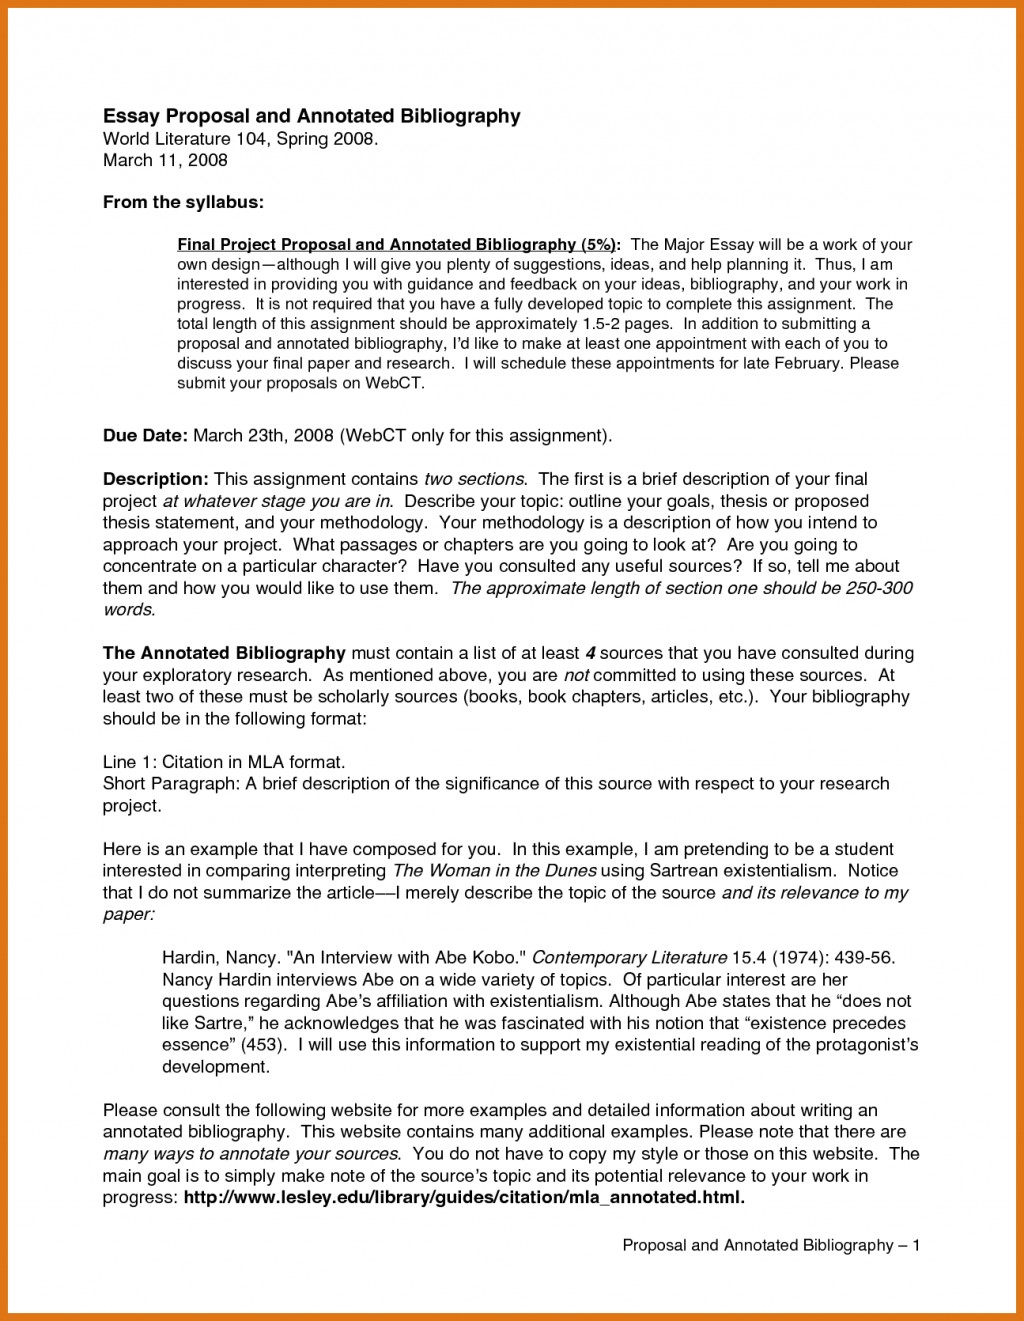 020 Bunch Ideas Of Chicago Style Essays Citation Essay How To Cite Sources Mla Format Excellent Bibliography Sample For Research Paper Fahrenheit20 1024x1321 Impressive Literary Analysis Large